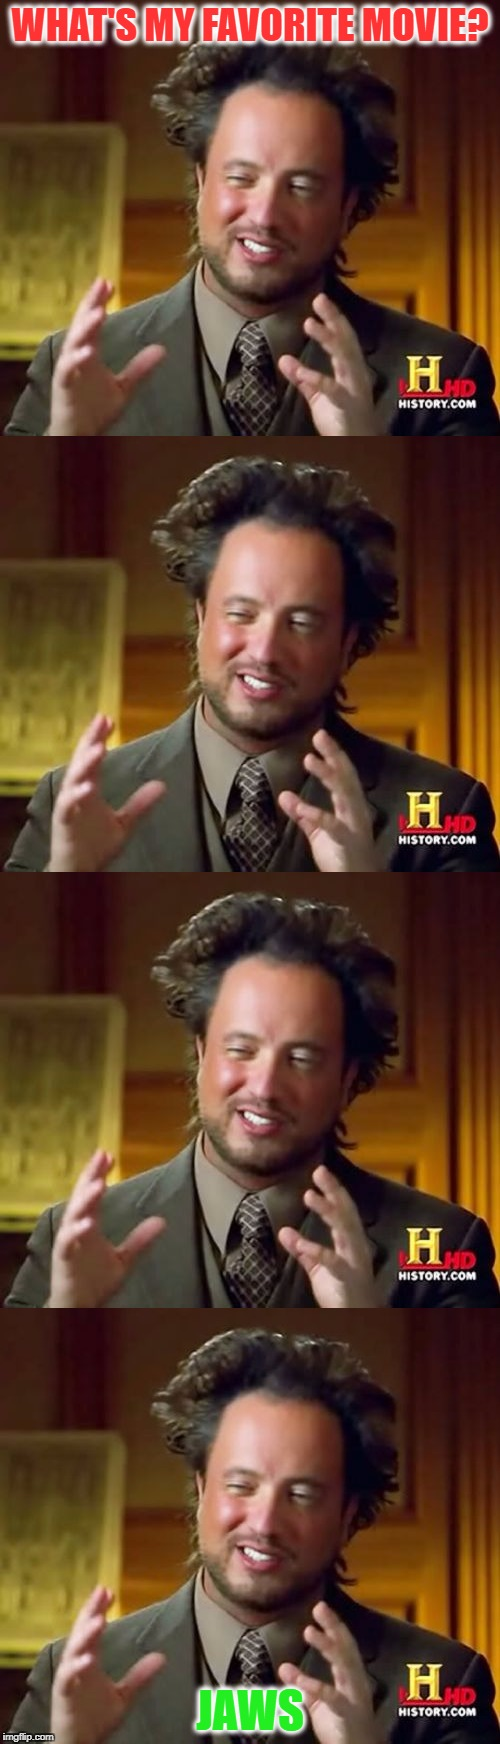 WHAT'S MY FAVORITE MOVIE? JAWS | image tagged in ancient aliens | made w/ Imgflip meme maker